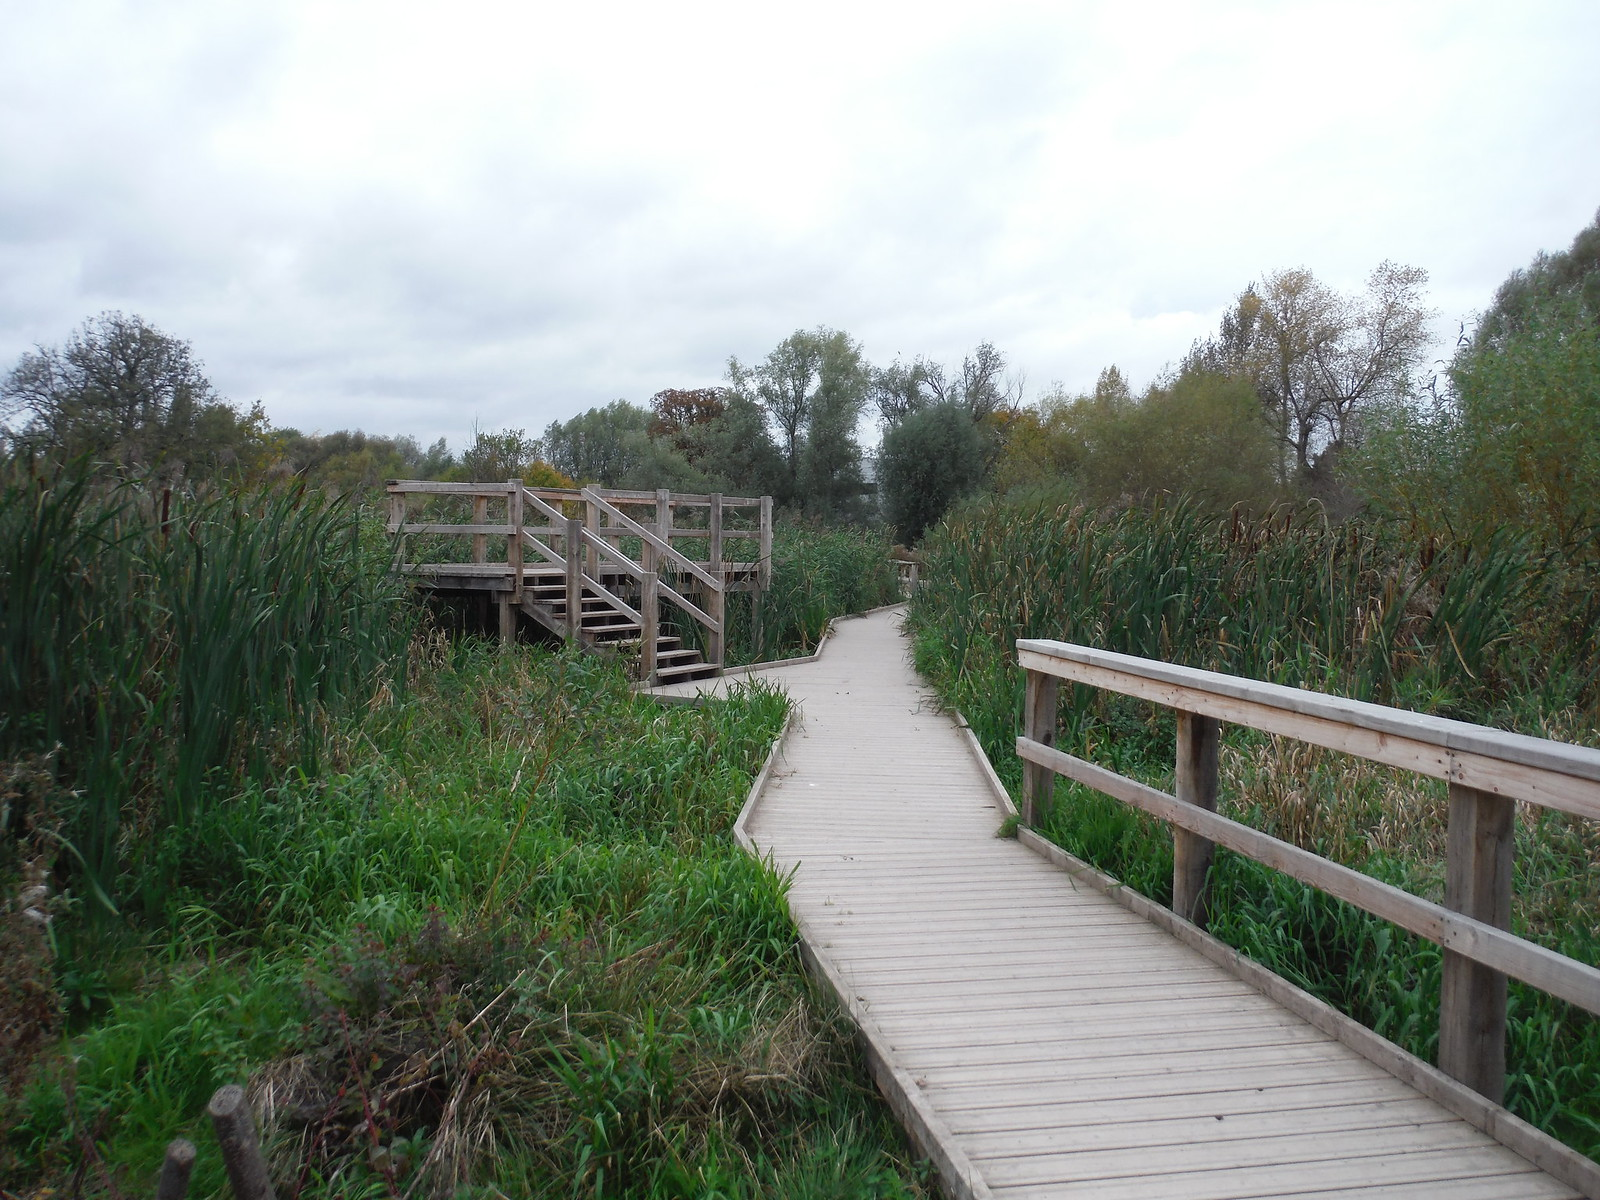 Boardwalk through Wetlands and Viewing Platform, Morden Hall Park SWC Walk Short 13 - Morden Hall Park and Merton Abbey Mills